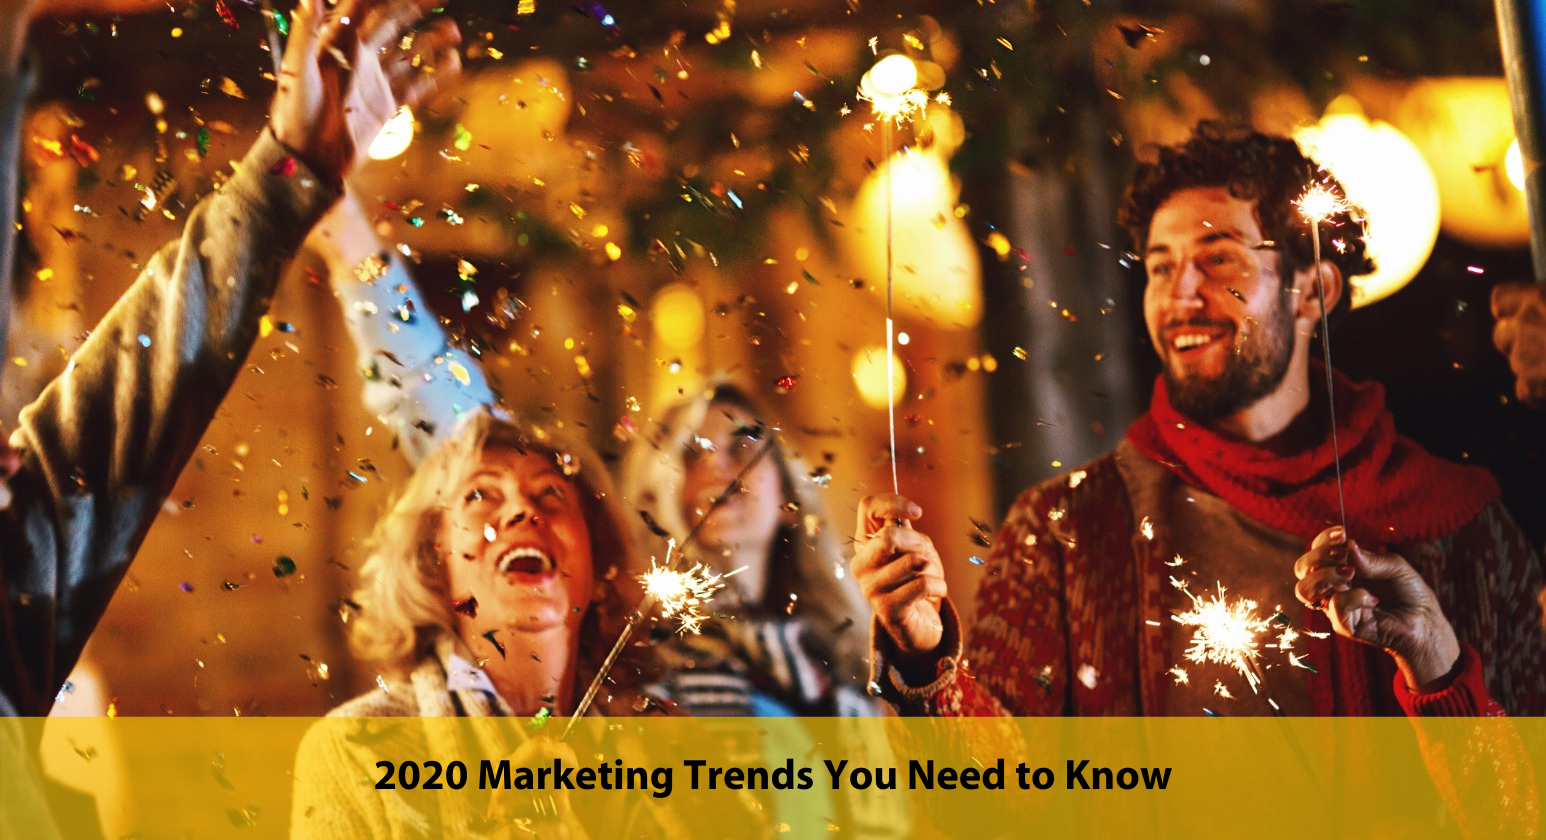 2020 Marketing Trends You Need To Know